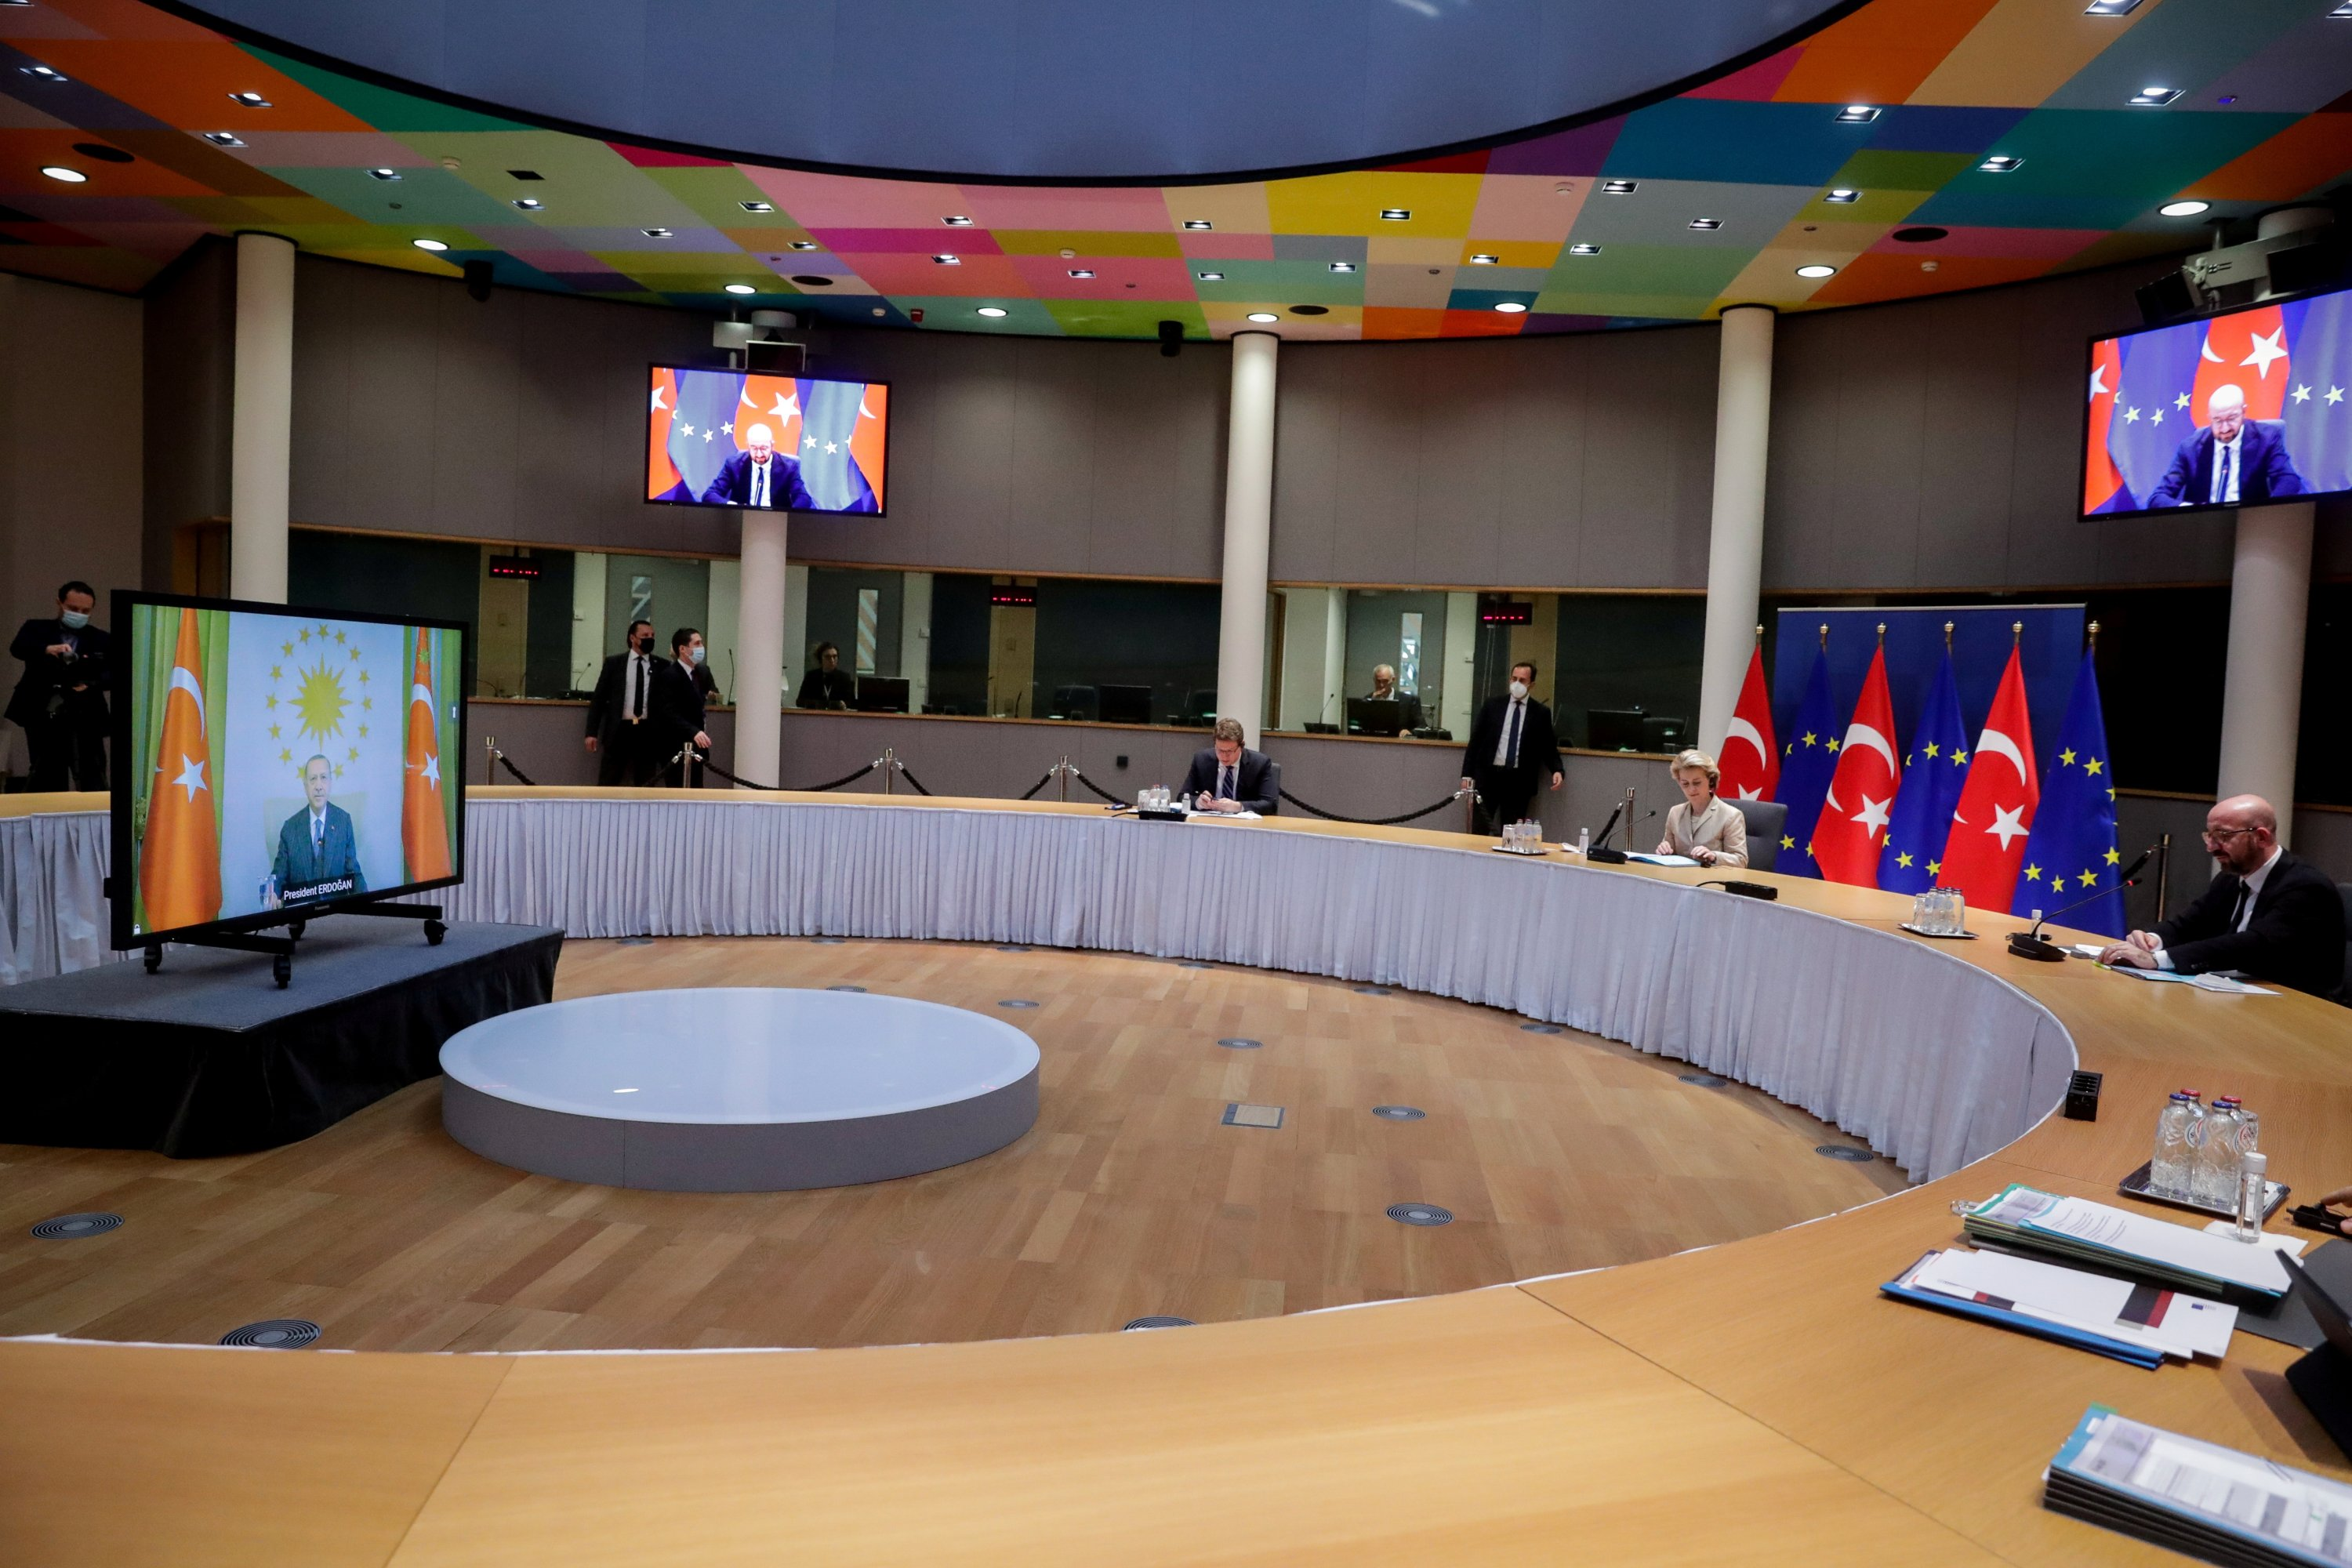 European Commission President Ursula von der Leyen and EU Council President Charles Michel hold a video call with Turkey's President Recep Tayyip Erdoğan, in Brussels, Belgium, March 19, 2021. (Reuters Photo)